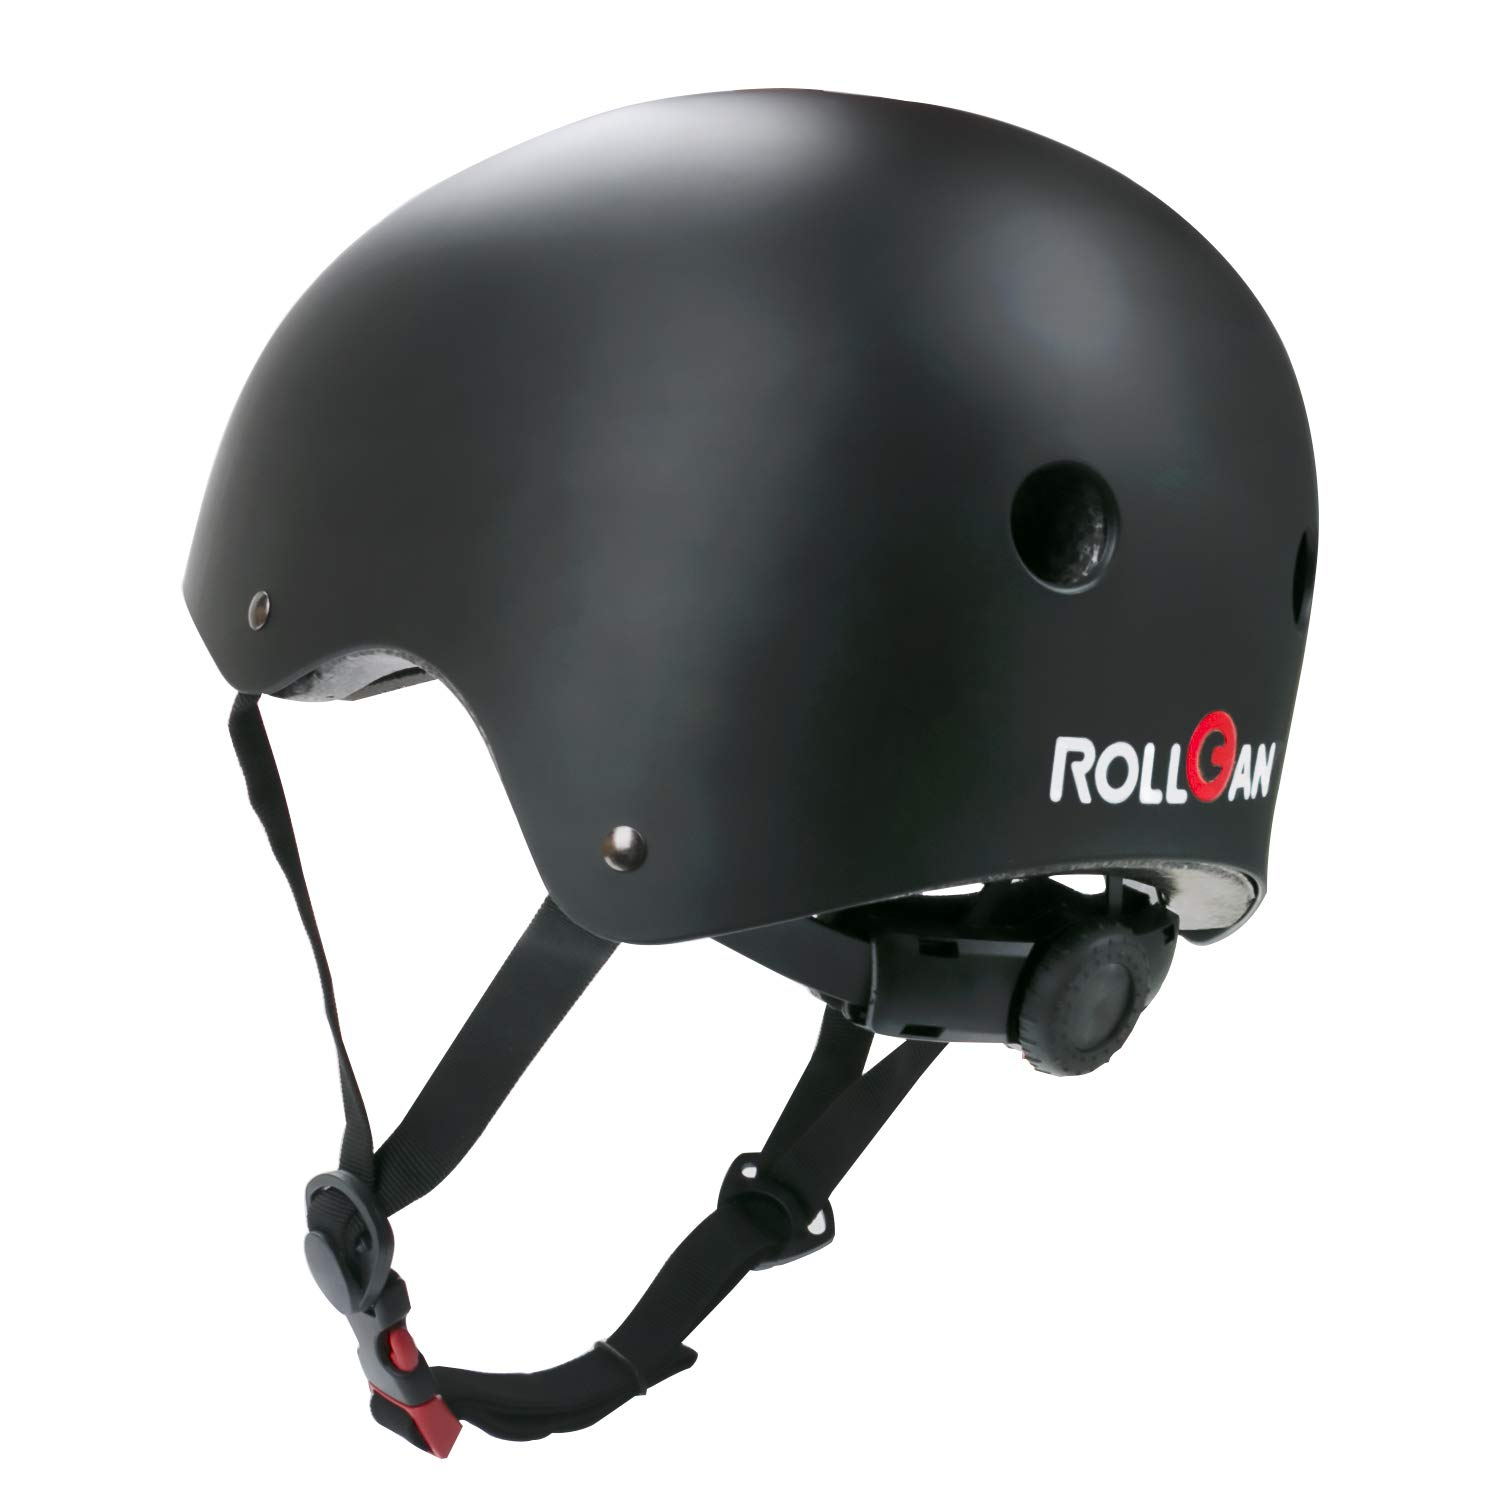 ROLLGAN Multipurpose Tough Sports Black Helmet CPSC for Skateboarding/Rollerskating/Biking/Cycling/Commuting/Scooter Size L(22.8-24 inches) by ROLLGAN